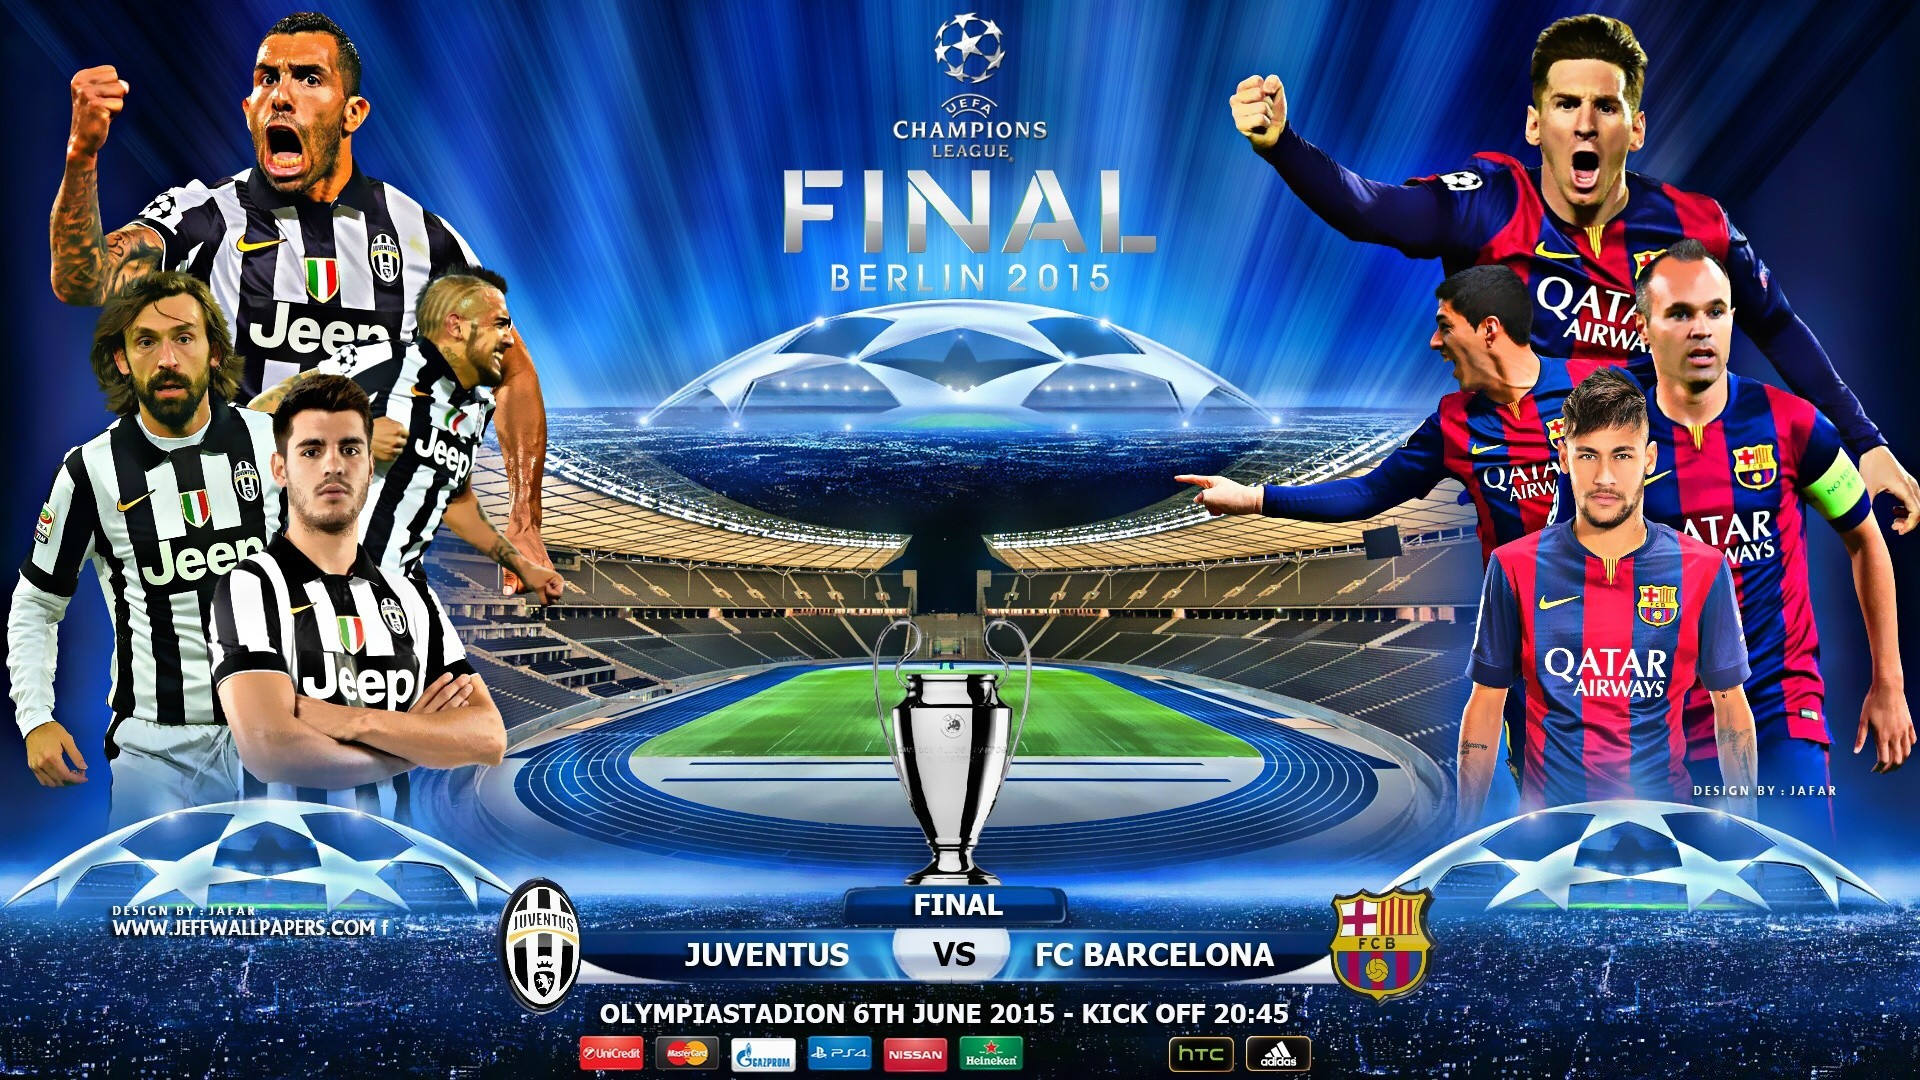 JUVENTUS FC BARCELONA CHAMPIONS LEAGUE FINAL Free Wallpapers